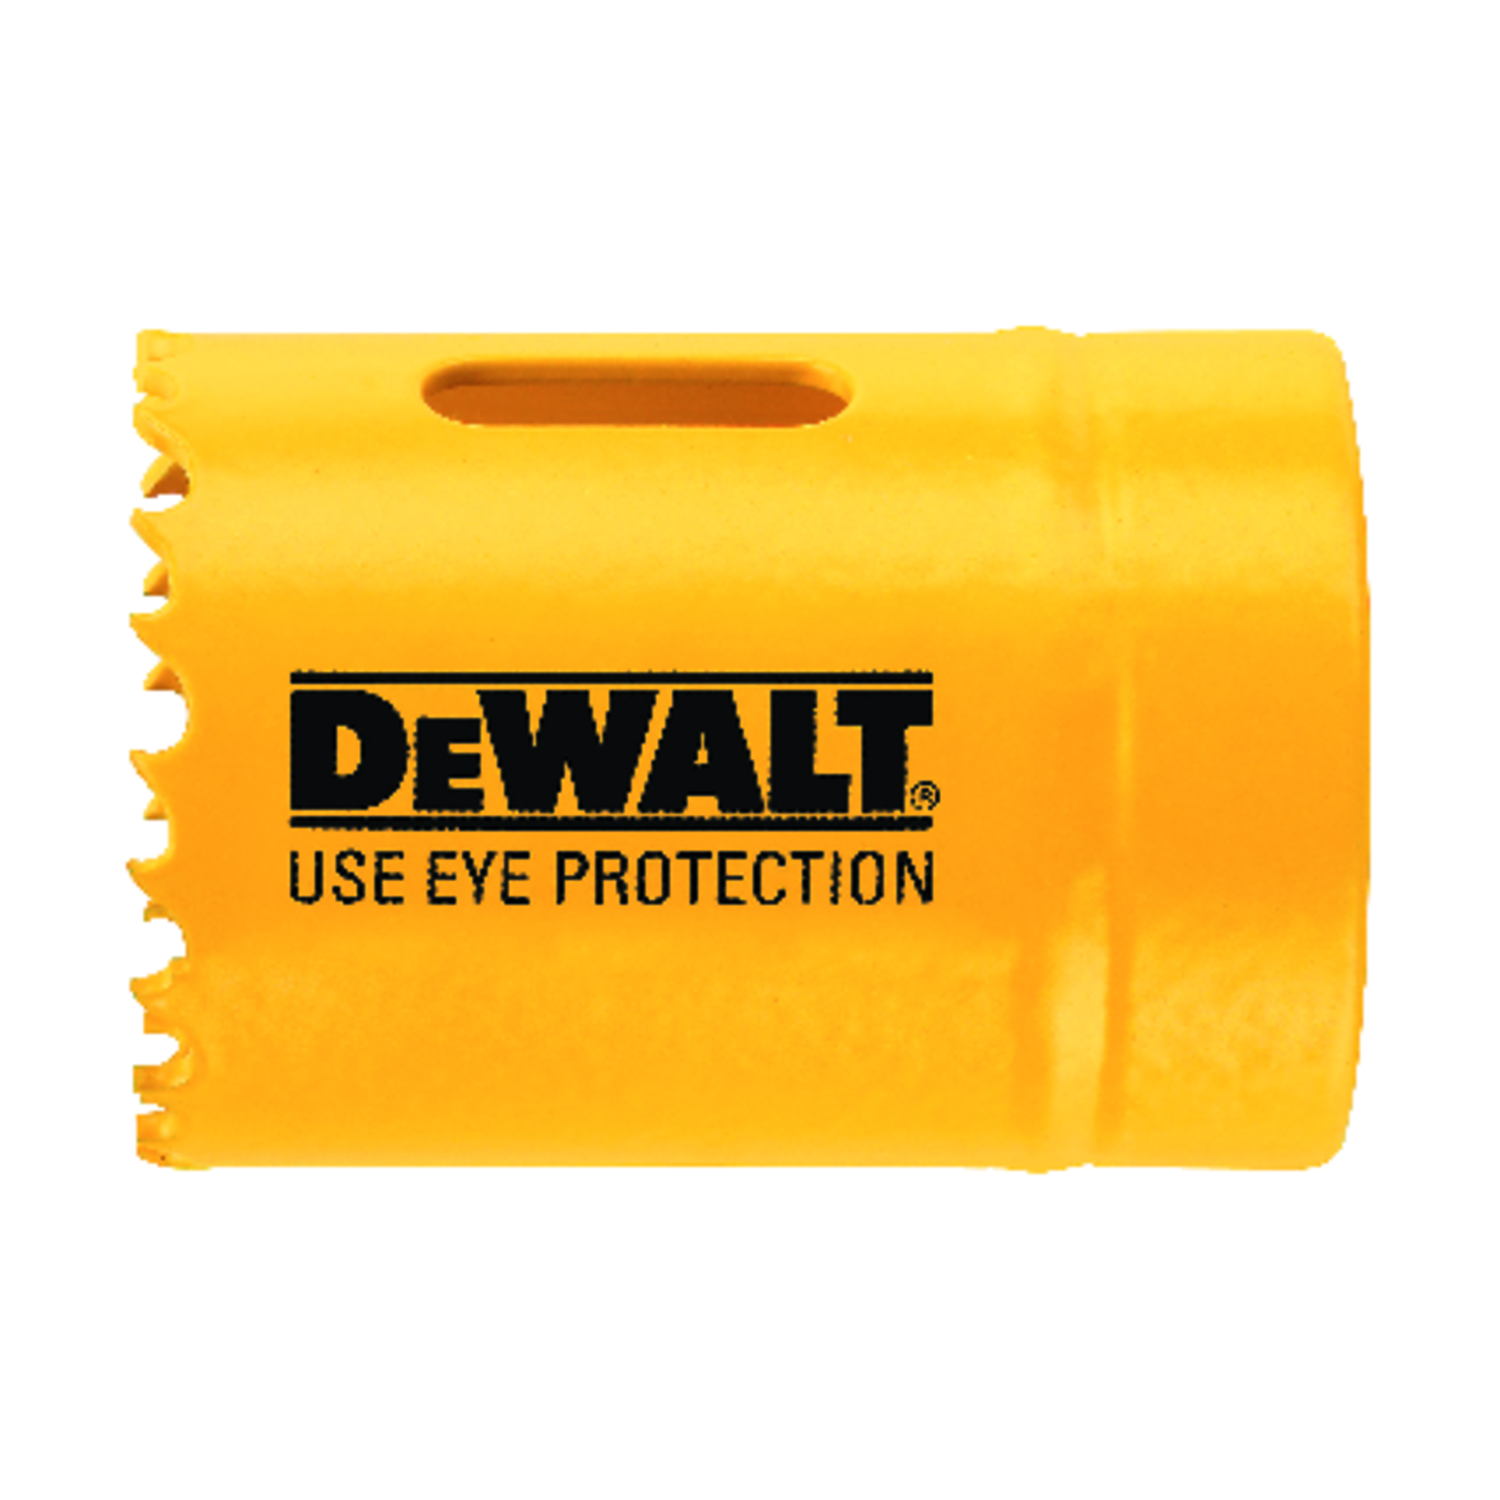 DeWalt  1.75 in. L x 1-3/8 in. Dia. Hole Saw  Bi-Metal  1 pc. 1/4 in.